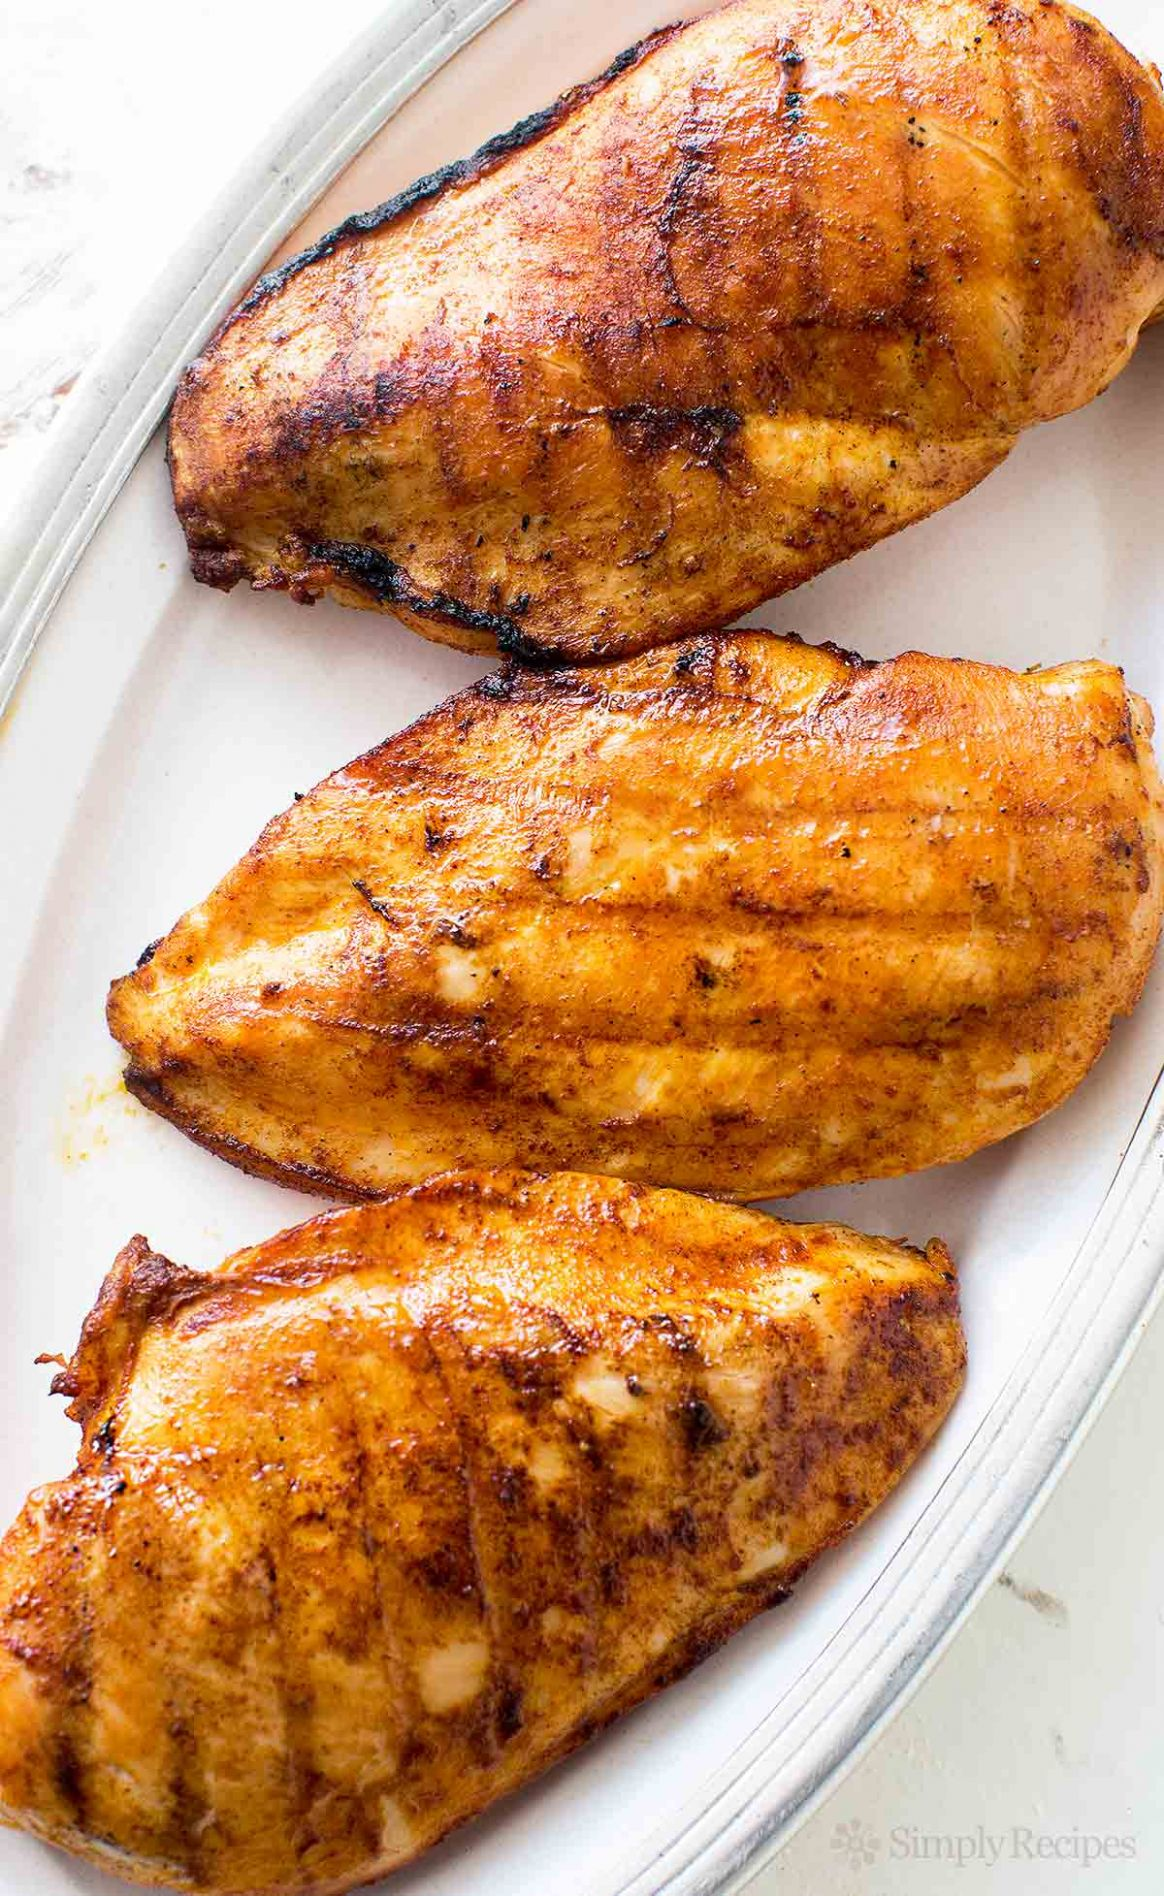 How to Grill Juicy Boneless Skinless Chicken Breasts